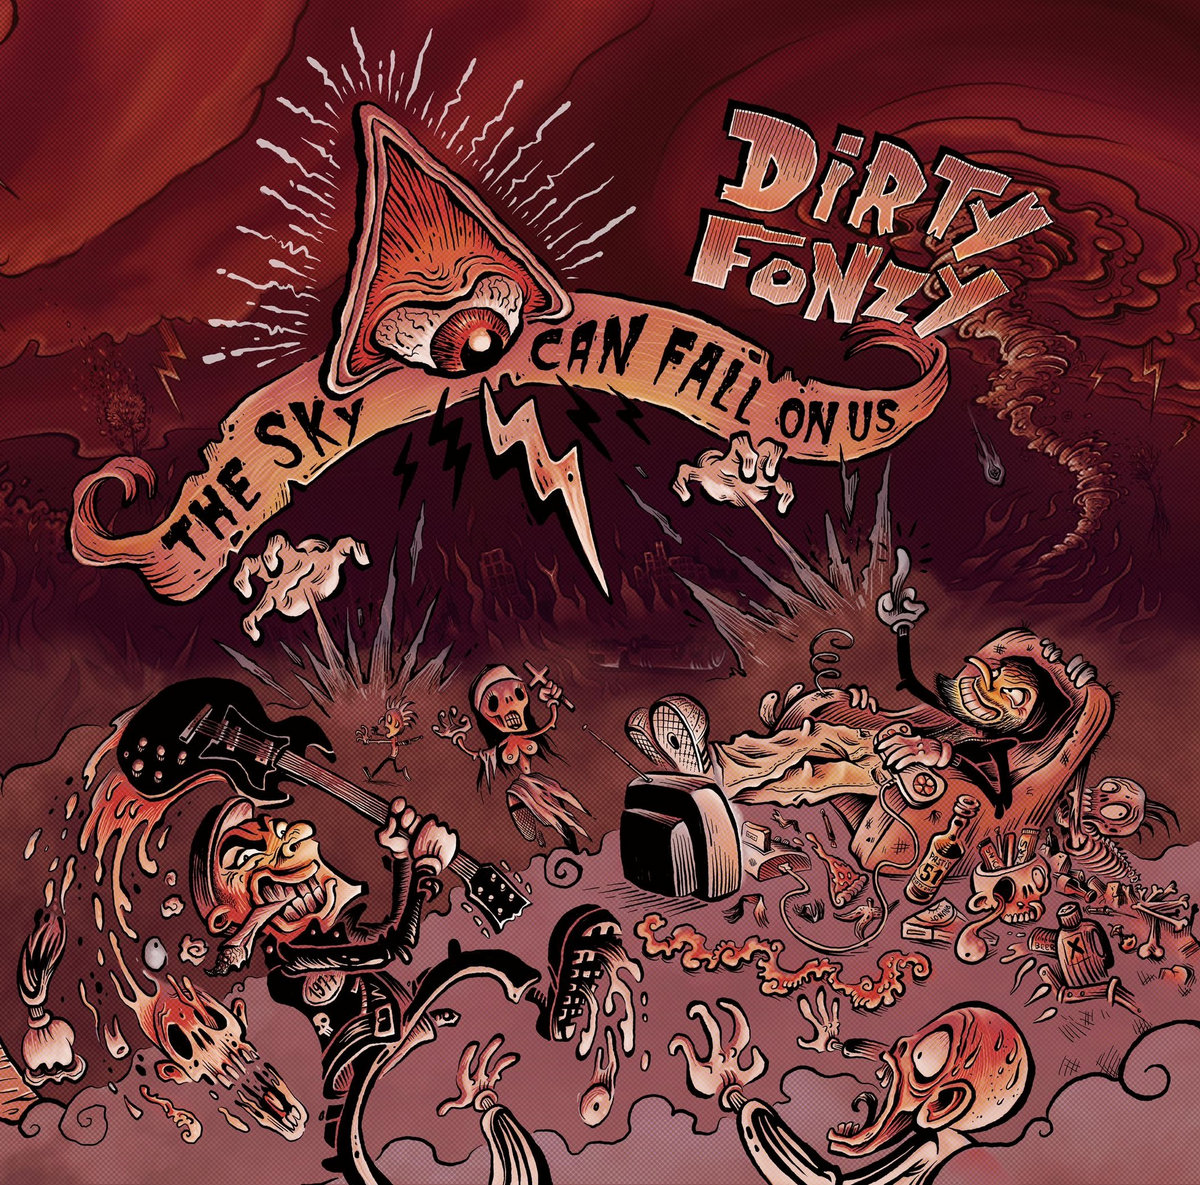 Dirty Fonzy - The Sky Can Fall On Us / Still The Worst